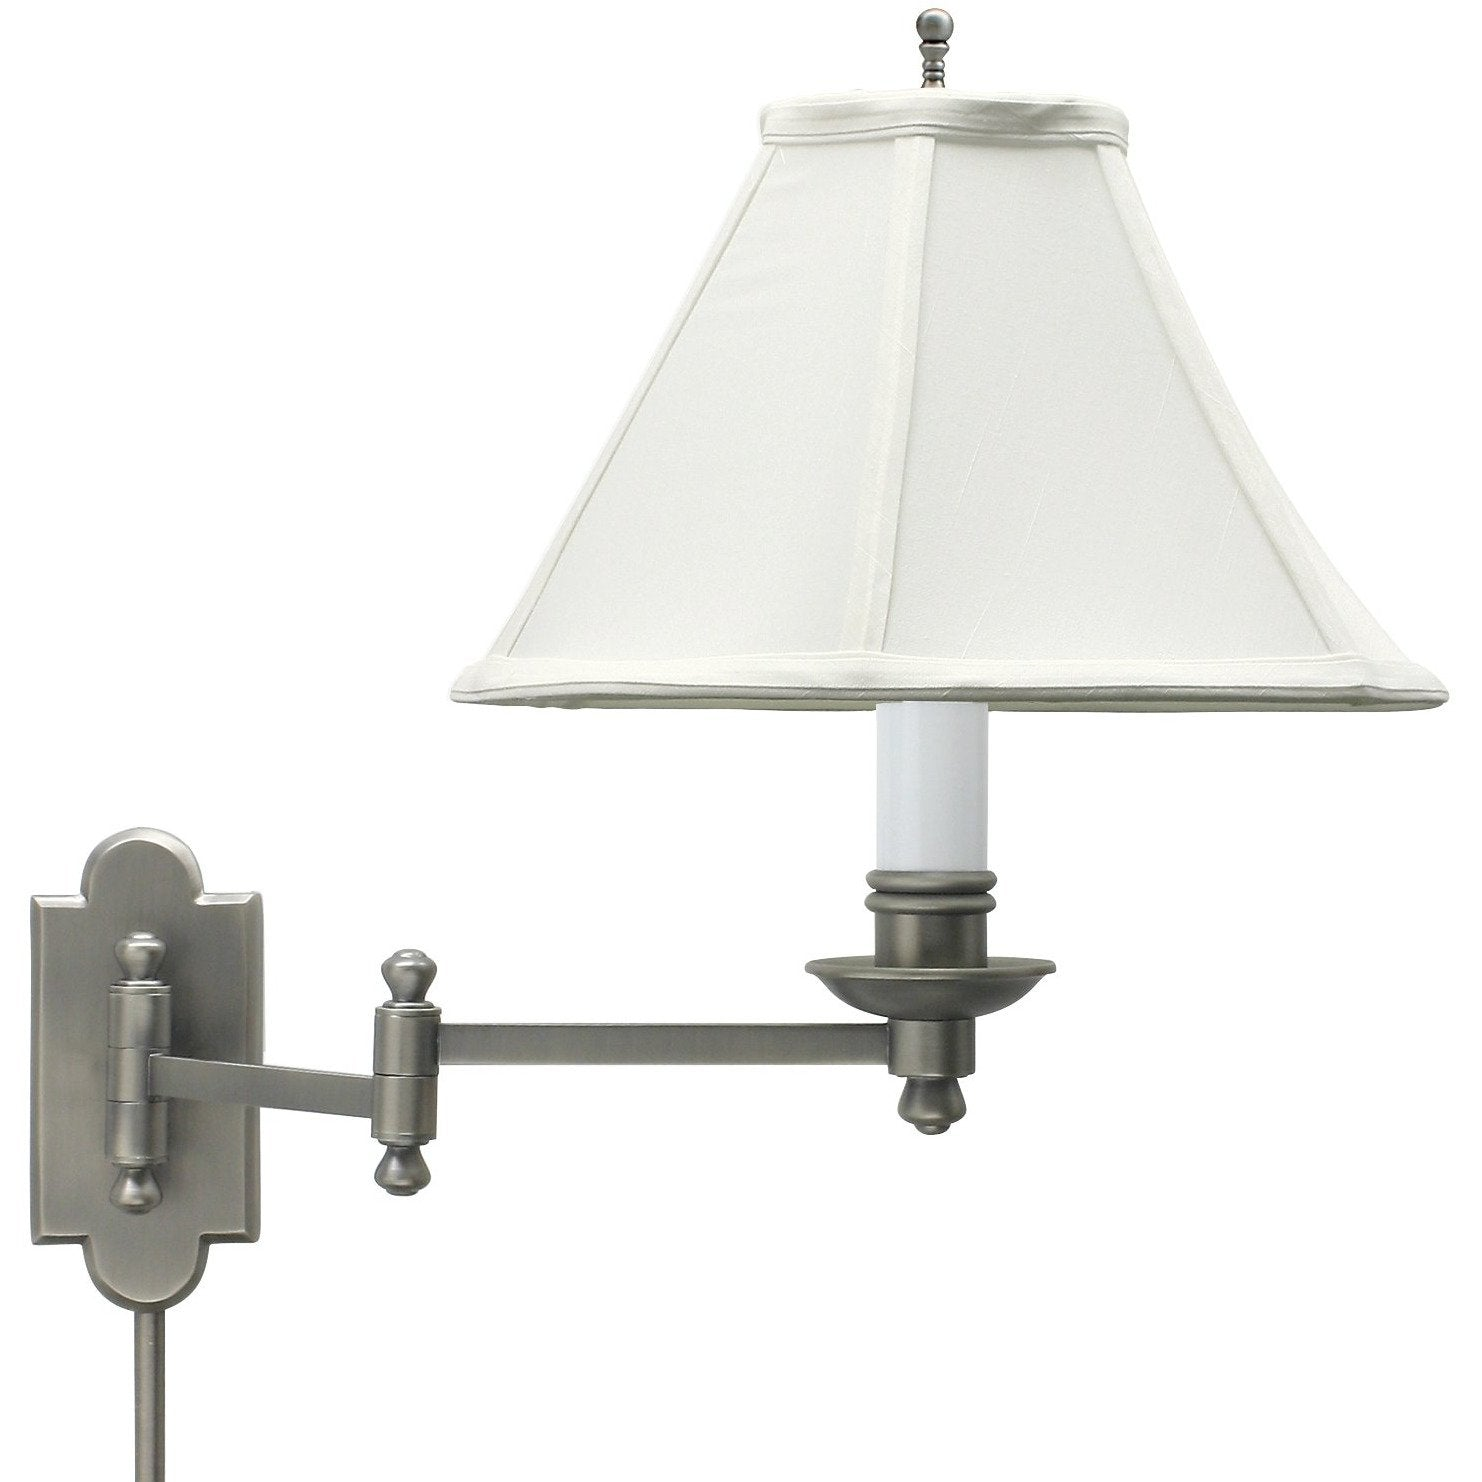 House Of Troy Wall Lamps Club Wall Swing Arm Lamp by House Of Troy CL225-AS